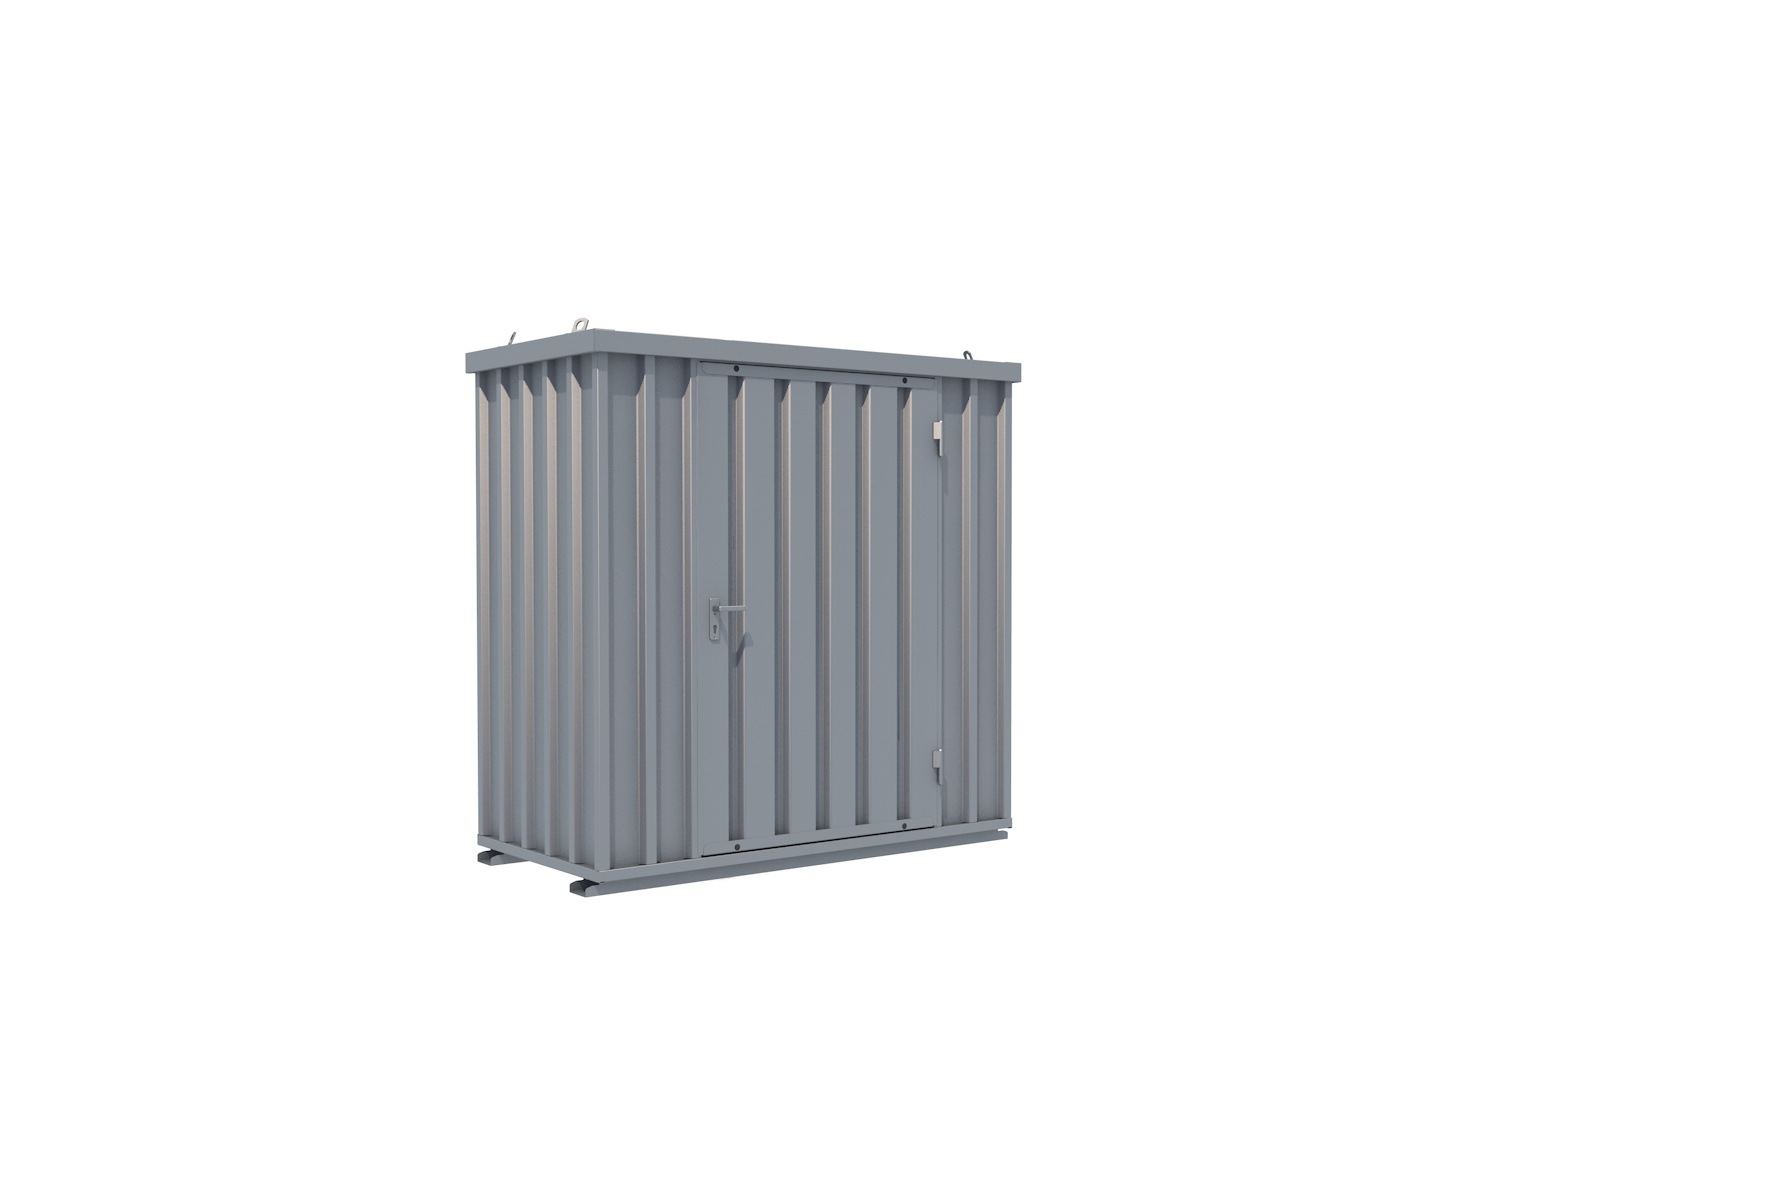 Materialcontainer / Schnellbaucontainer